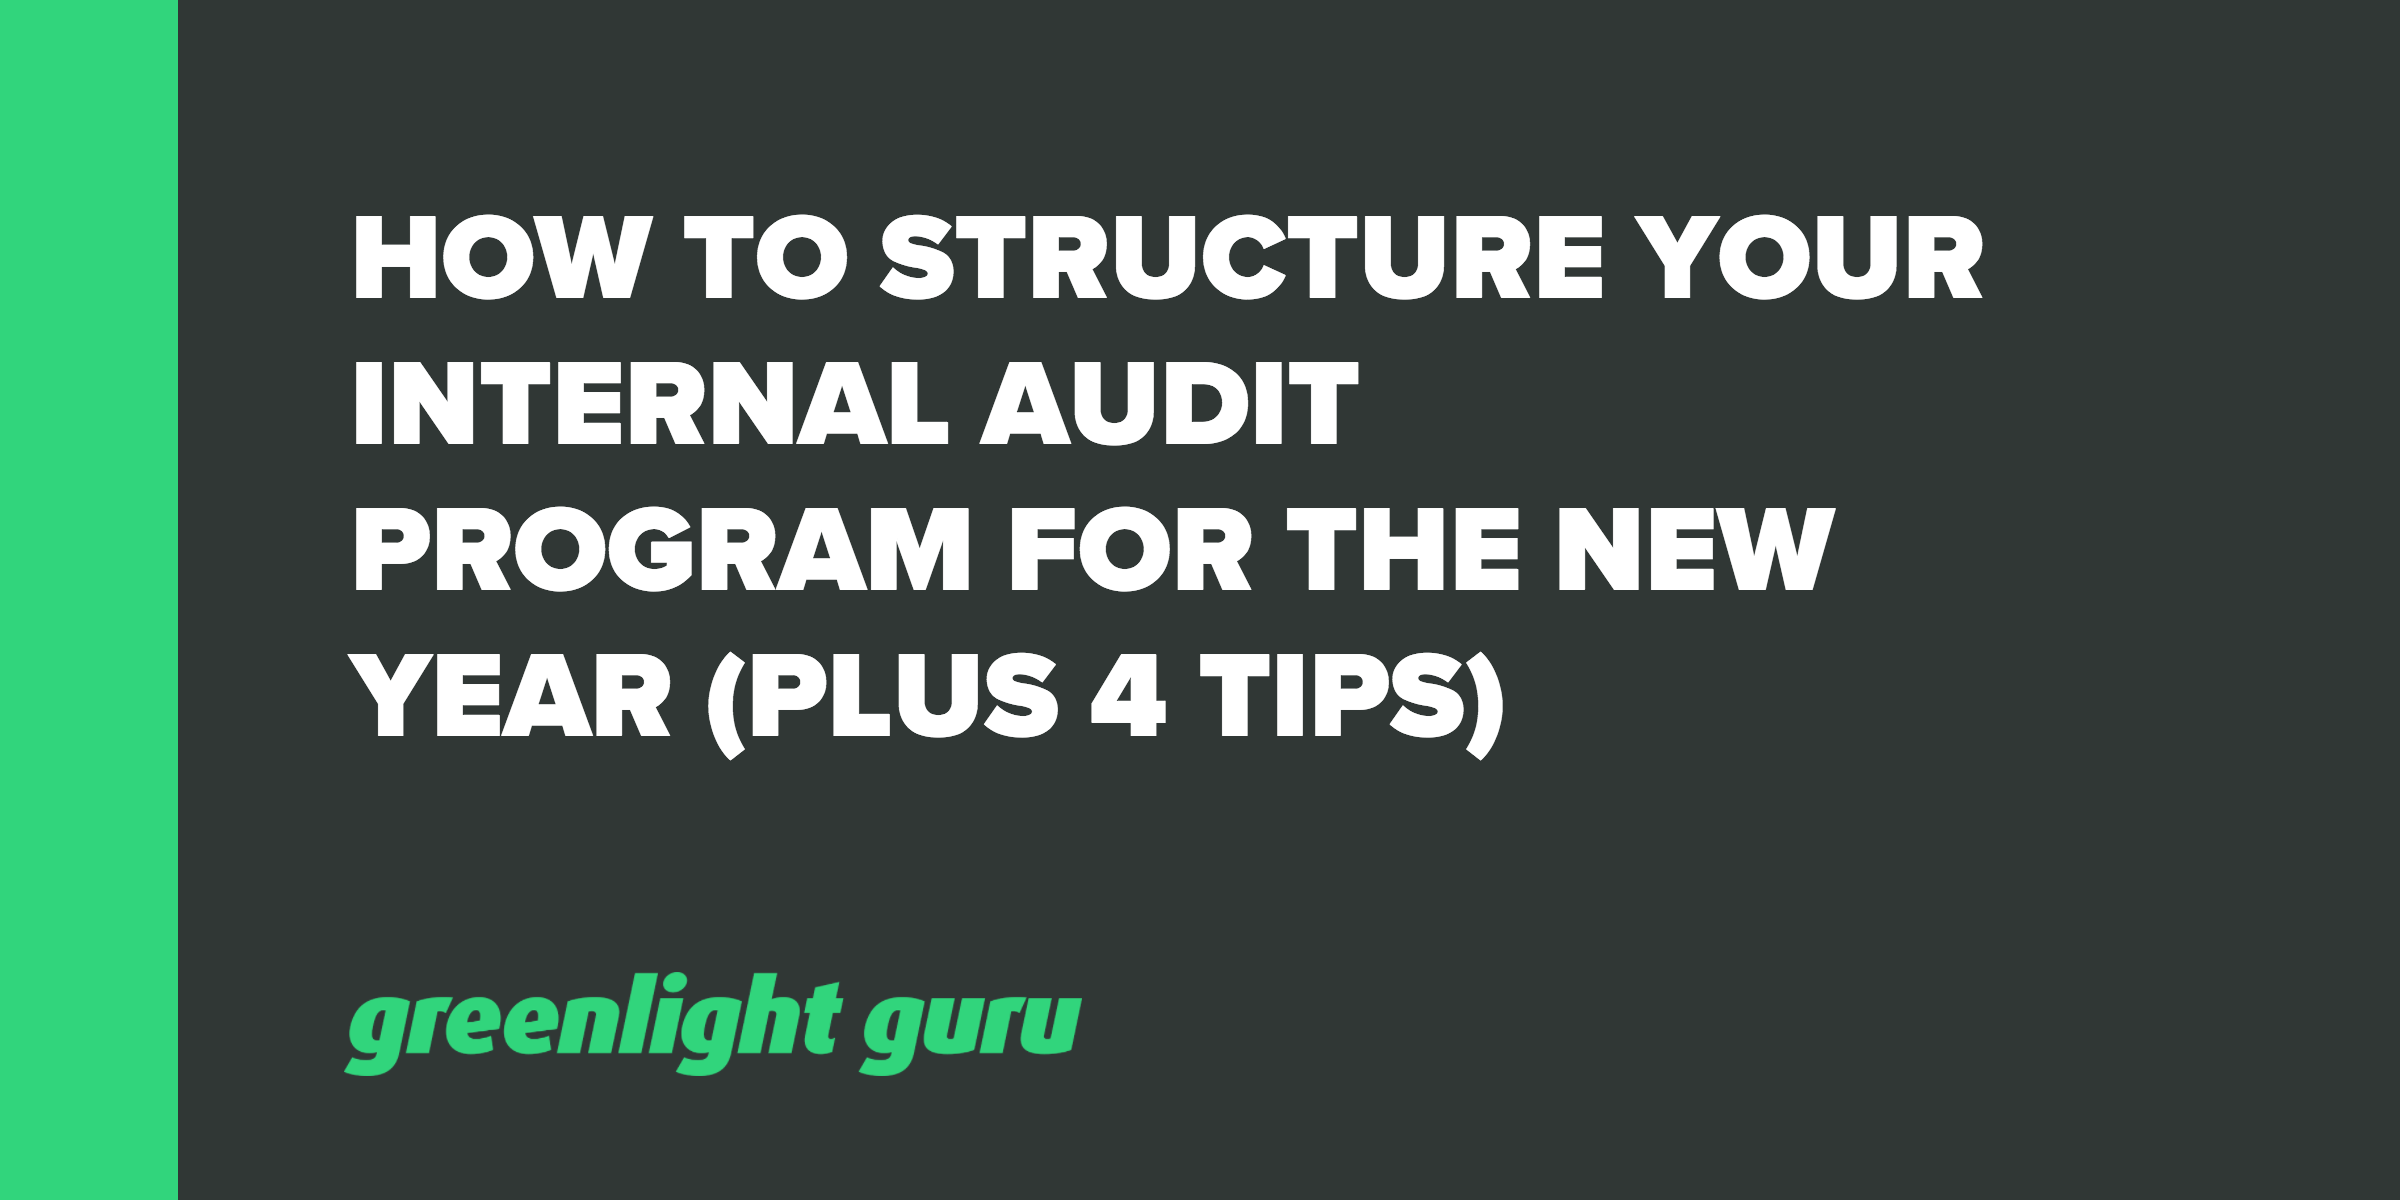 How to Structure Your Internal Audit Program for the New Year (Plus 4 Tips) - Featured Image